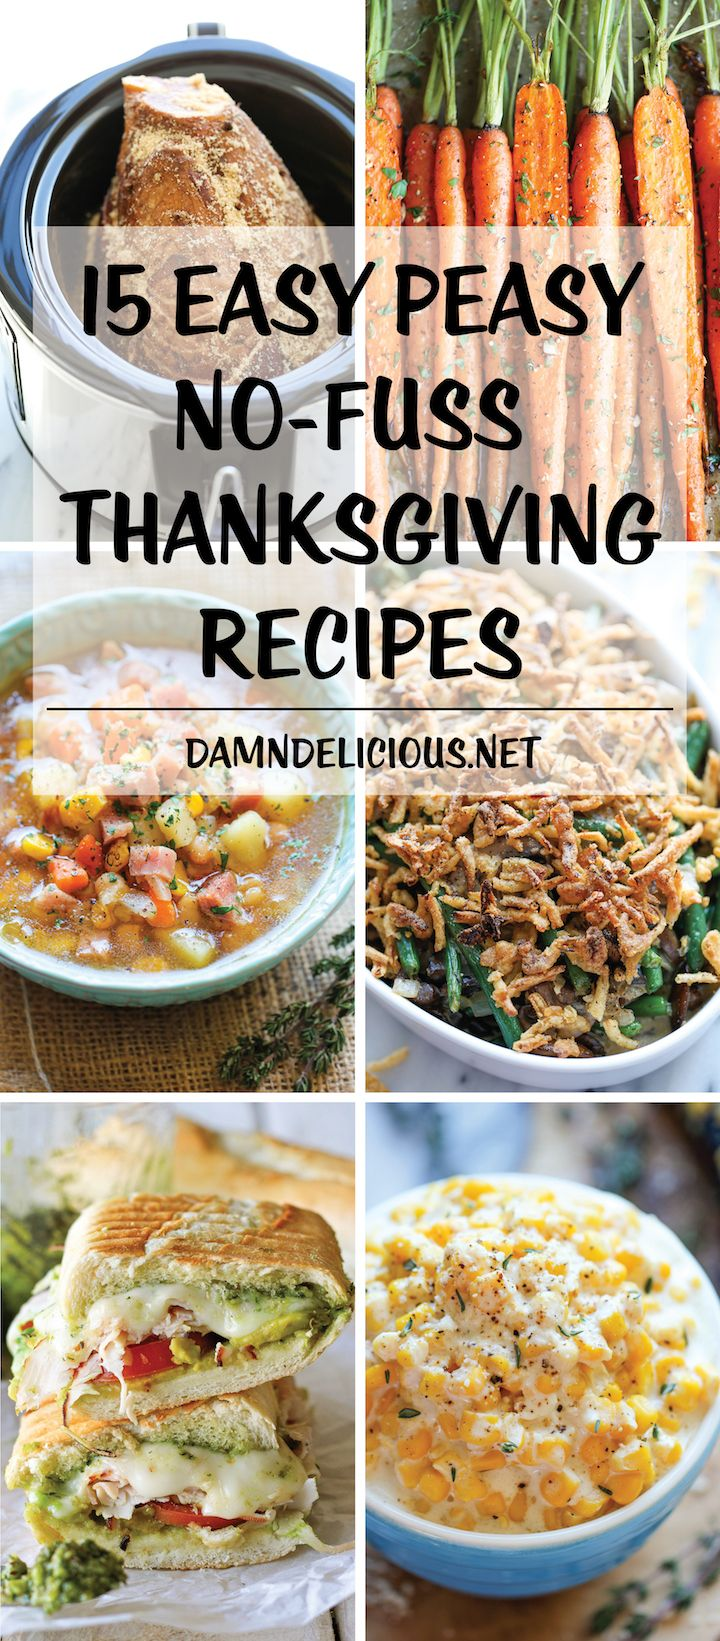 15 Easy Peasy No-Fuss Thanksgiving Recipes - These recipes will make for the best and EASIEST holiday meal. From sides to mains to even using up leftovers!